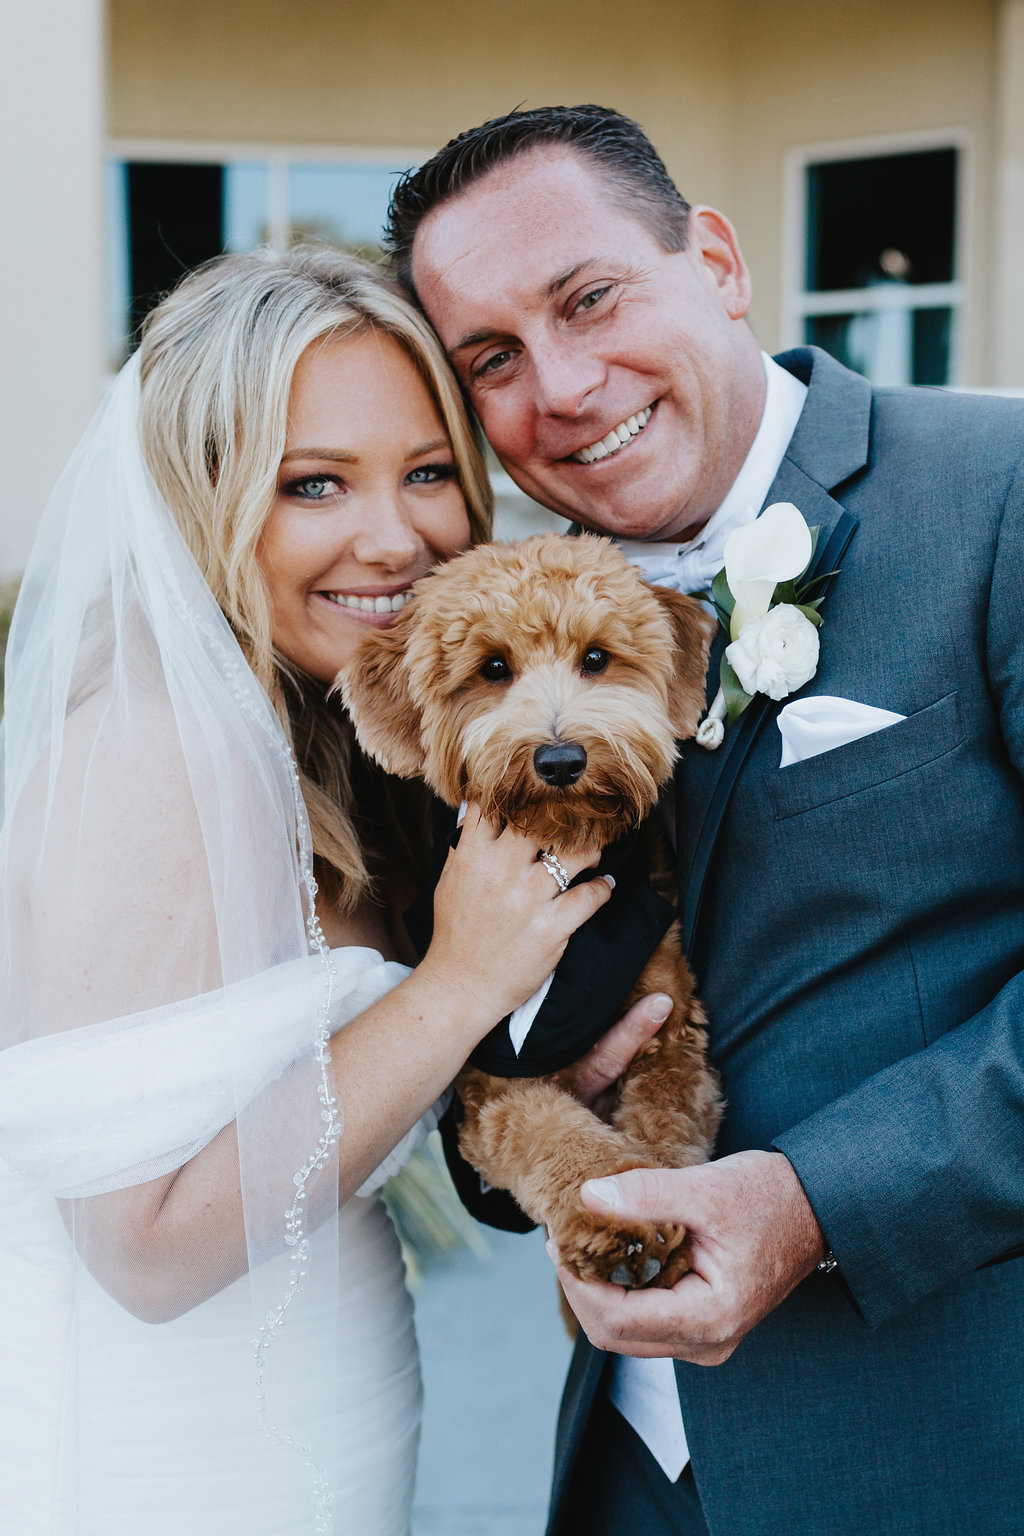 Bride and Groom Wedding Portrait with Dog in Tuxedo   St. Pete Beach Wedding Venue Isla Del Sol Yacht and Country Club   St. Petersburg Pet Wedding Planner Fairy Tail Petcare